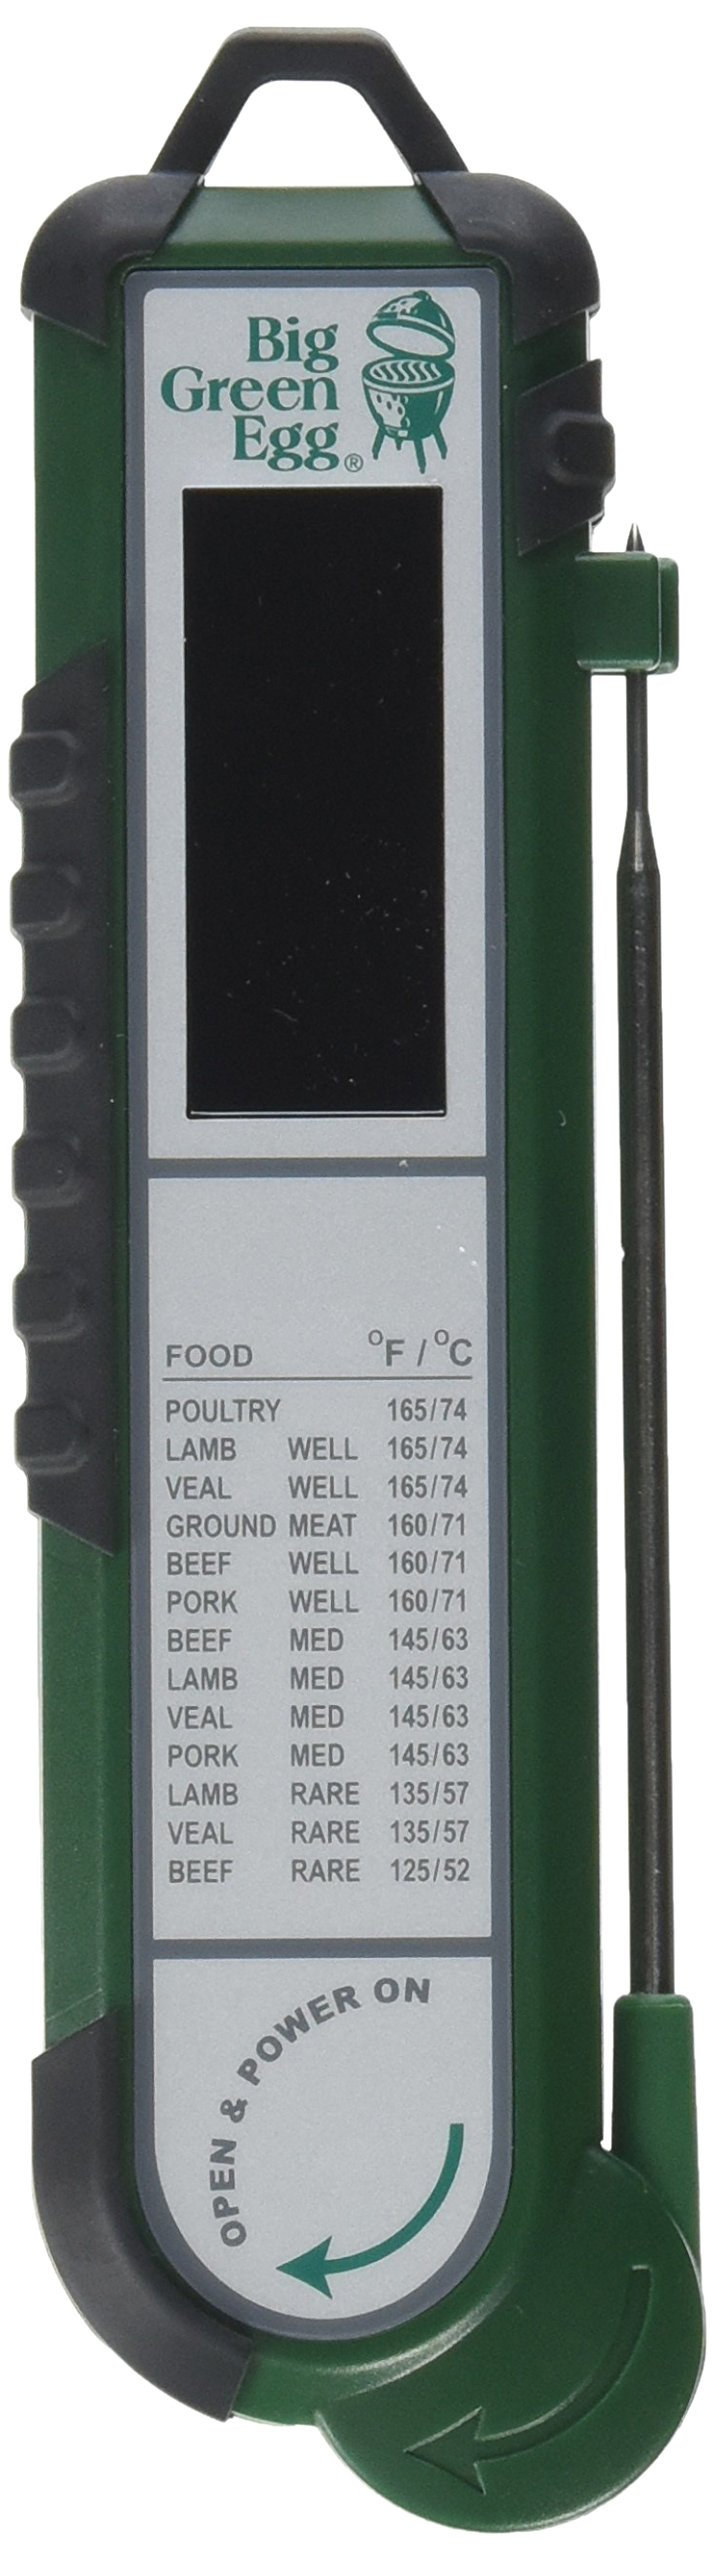 Big Green Egg Instant Read Digital Food Thermometer PT100 by Big Green Egg